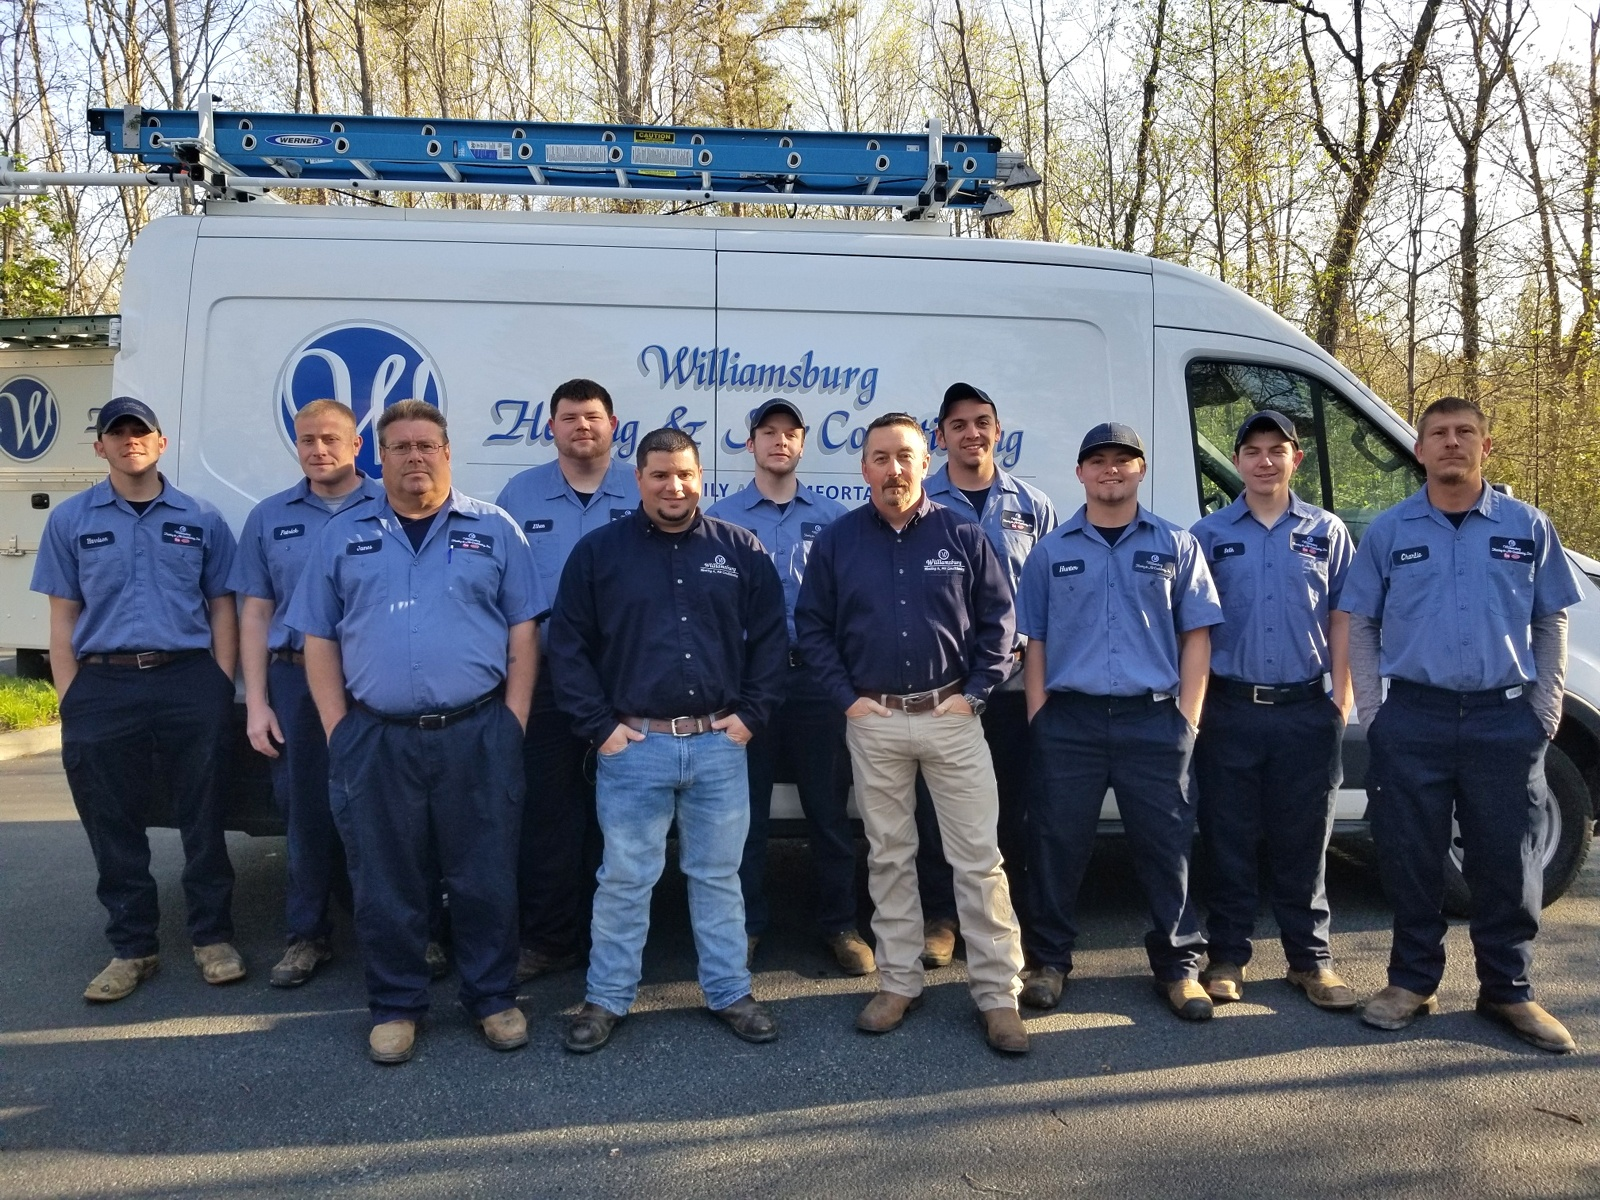 The coverage area for Heating & Air Conditioning, Inc. is the Williamsburg area of Virginia